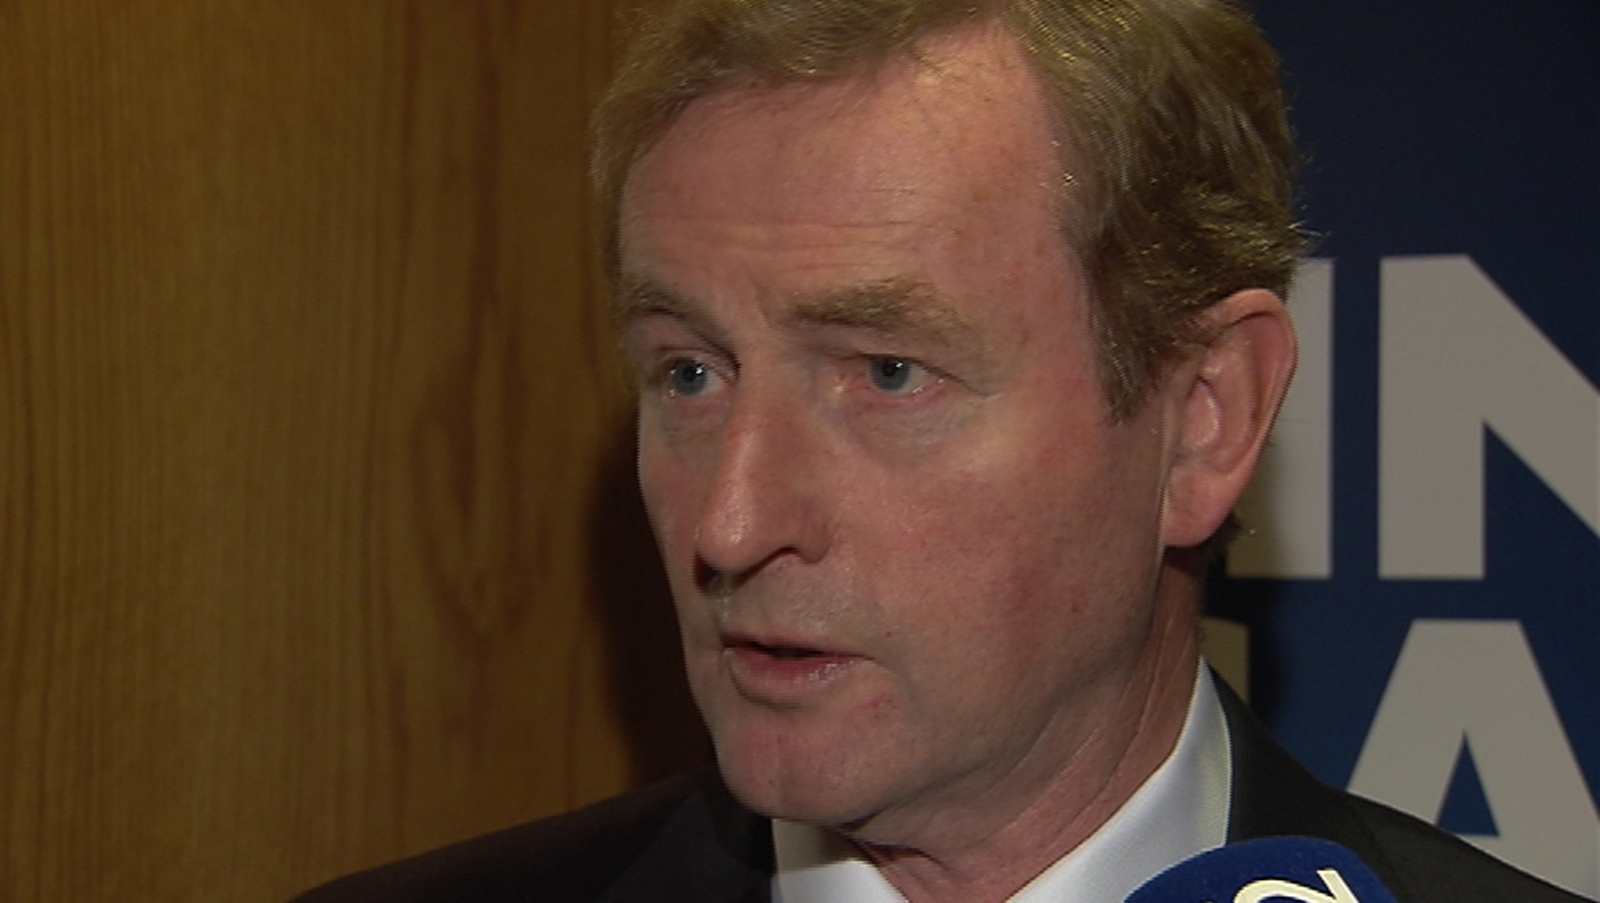 Without water charges taxes would increase - Kenny